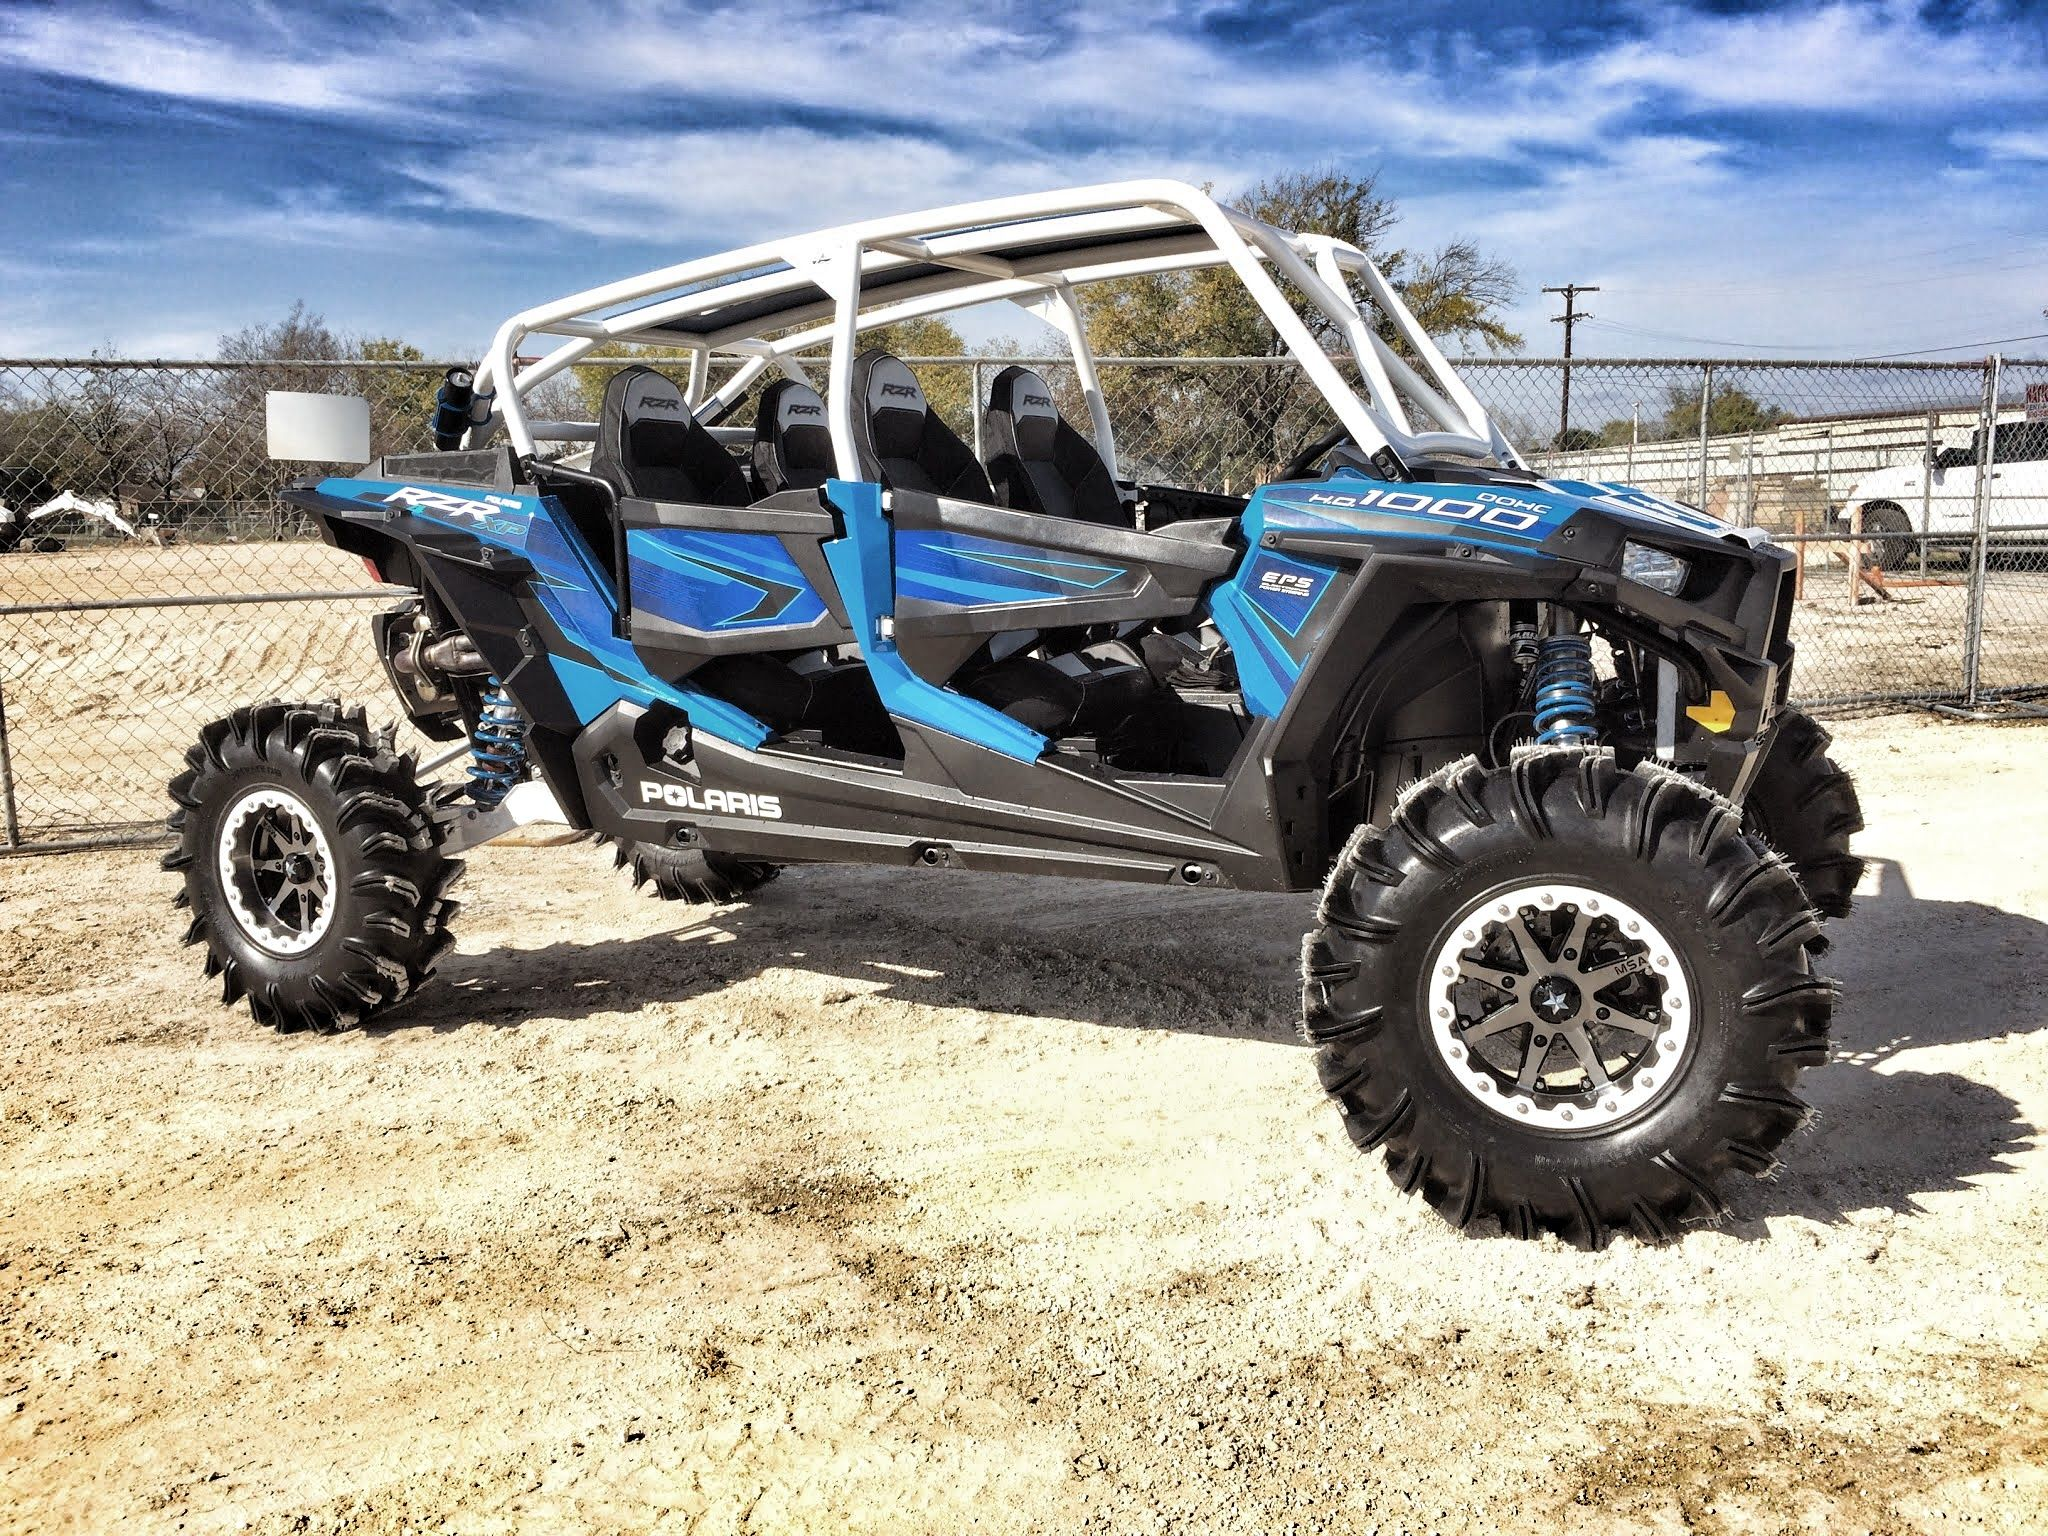 Project cookie monster based on a 2015 rzr 4 1000 created by wc3 woods